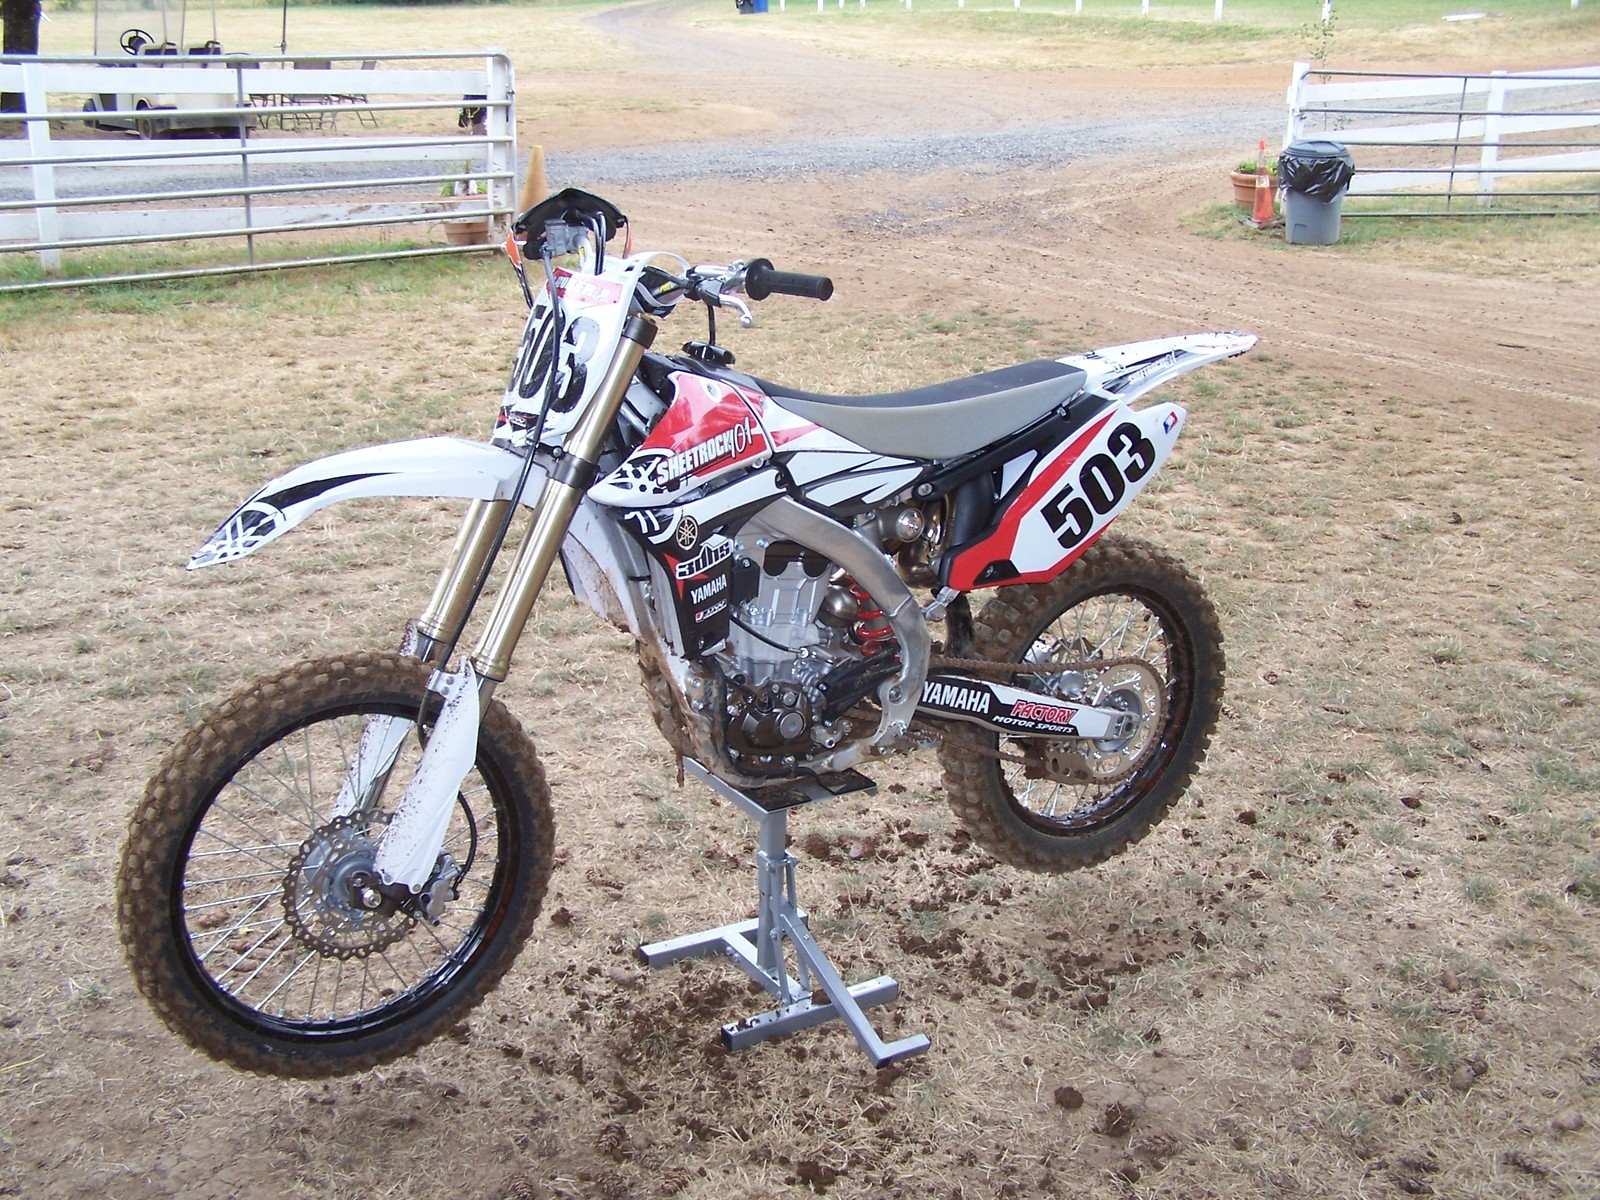 Huber YZ450F 3 - jeffro503 - Motocross Pictures - Vital MX